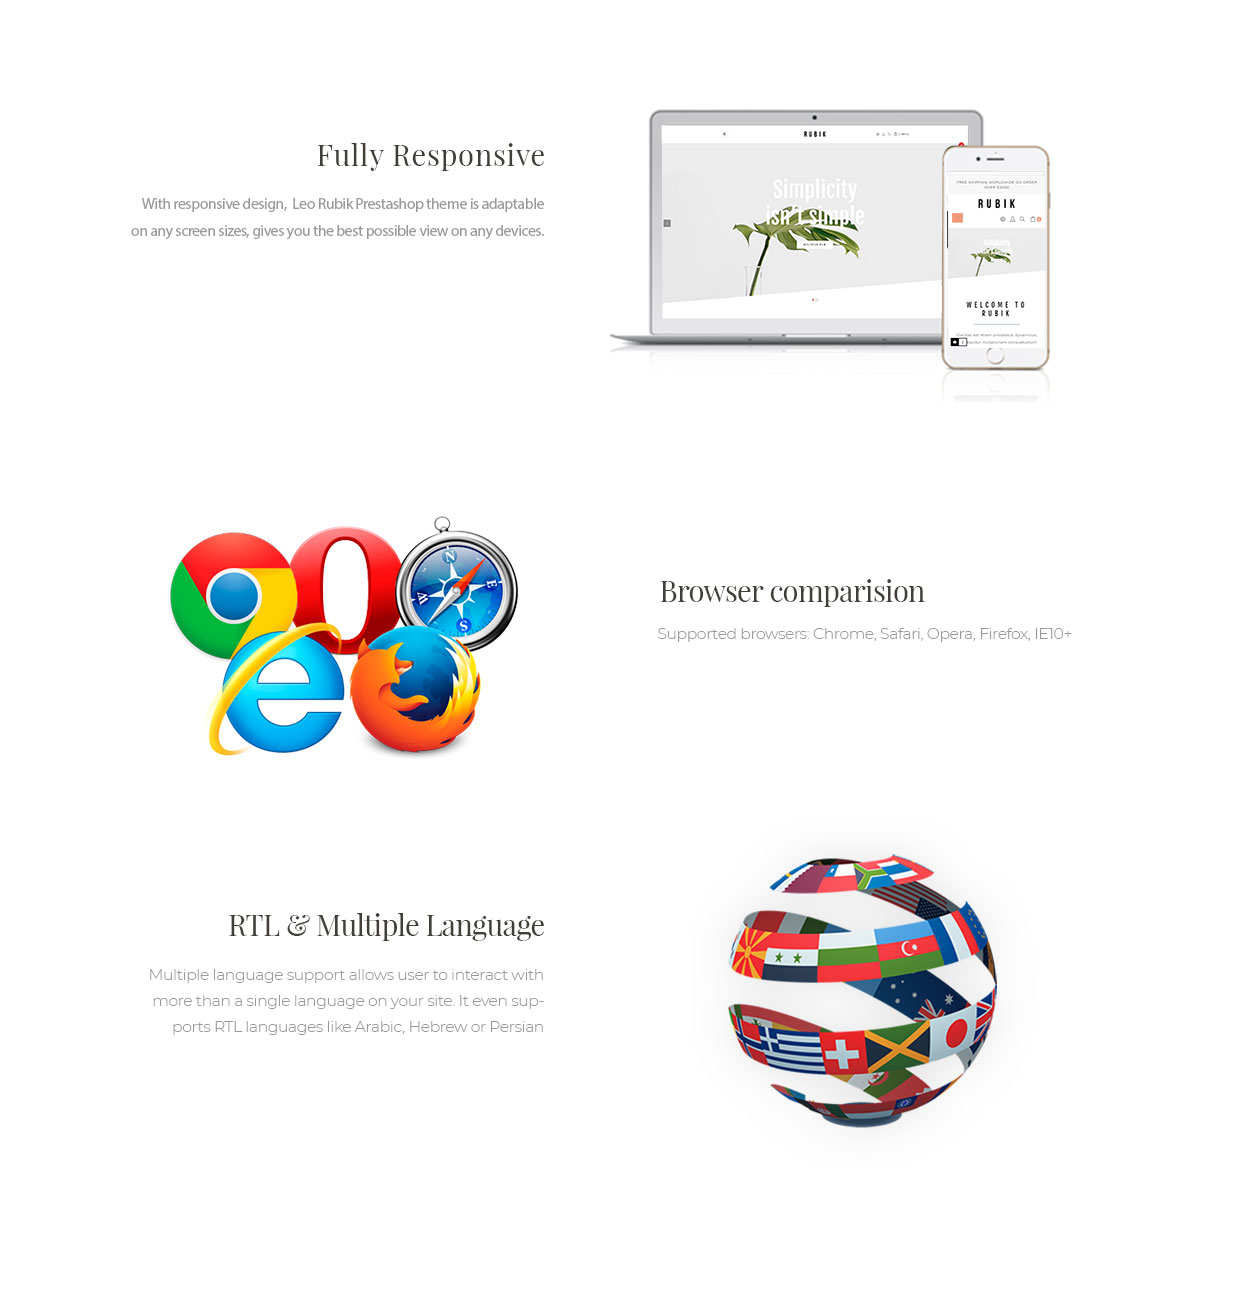 theme-features-rubik-furniture-presashop-theme